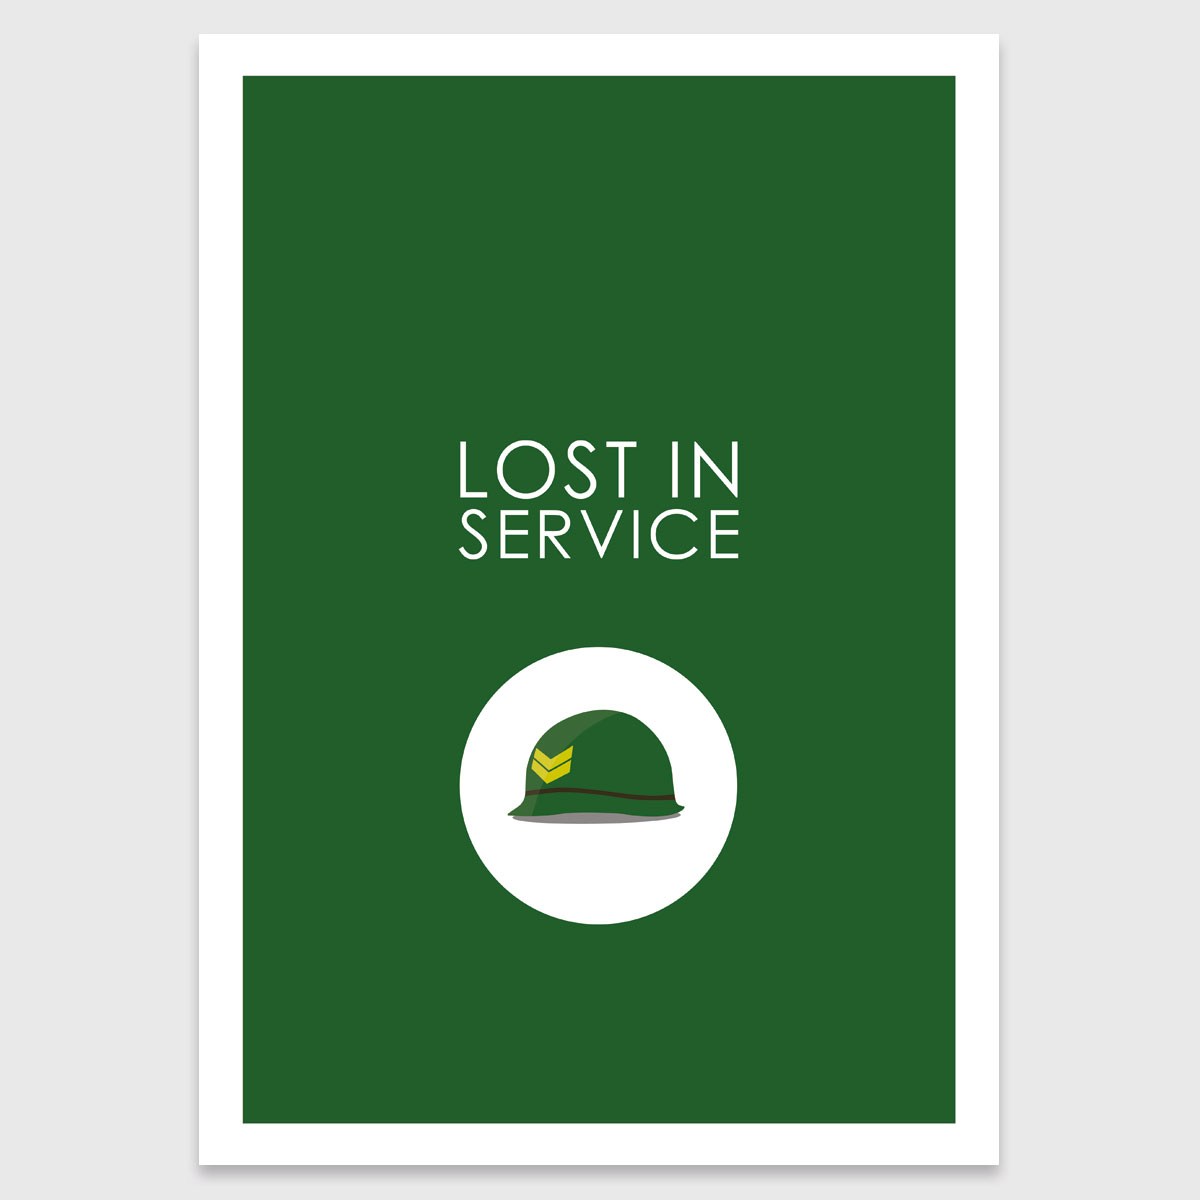 Alternative photo: Retro print: Lost in service